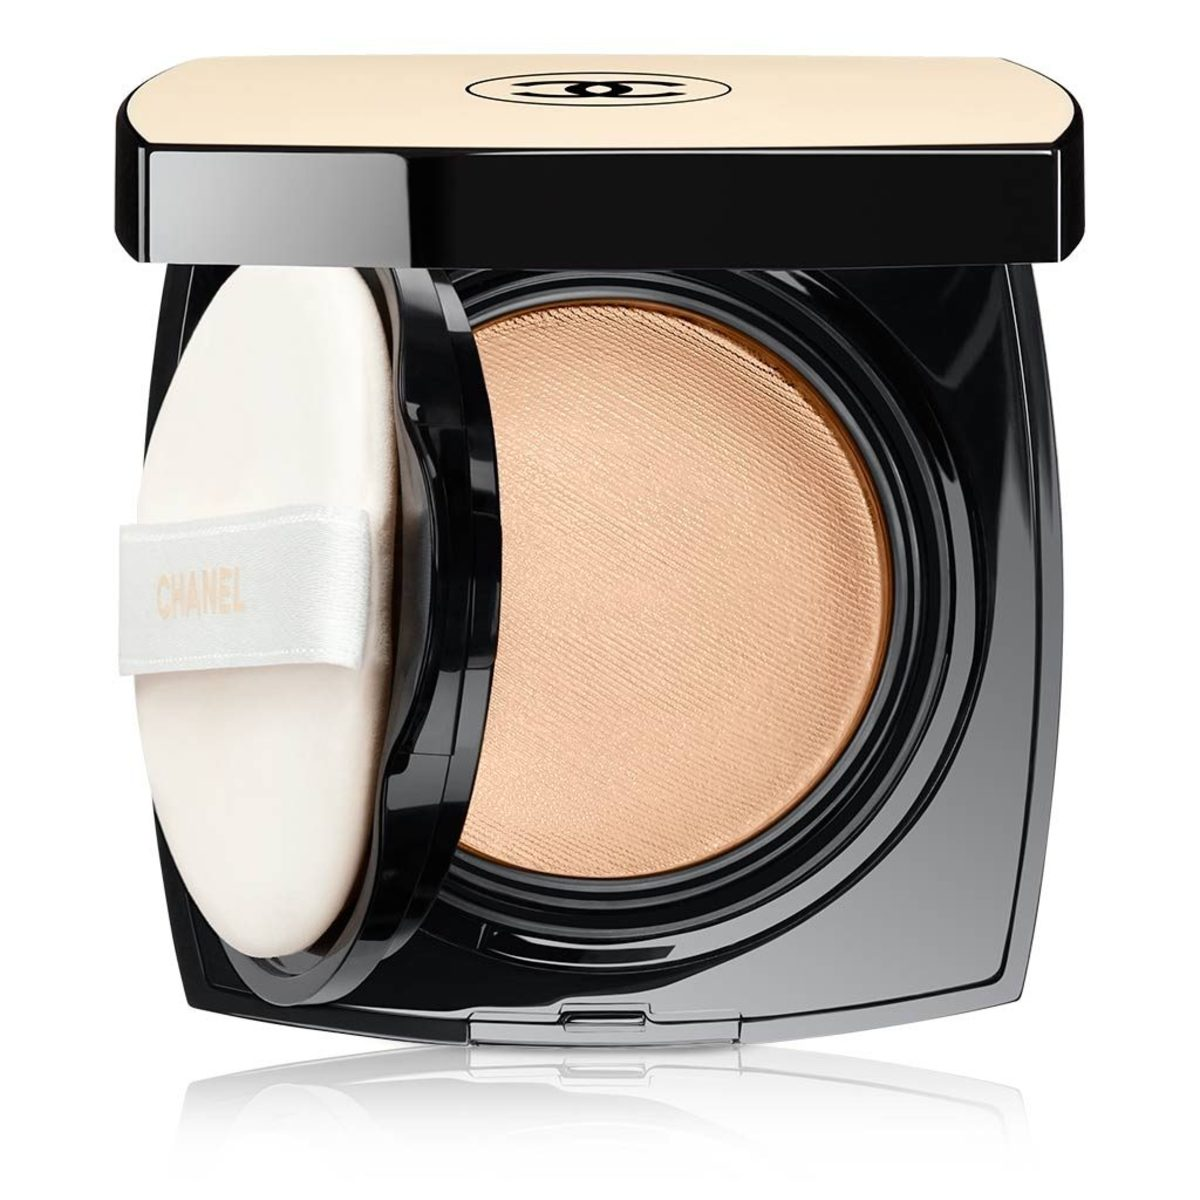 Chanel Les Beiges Healthy Glow Gel Touch Foundation cushion: launching in North America July 2017